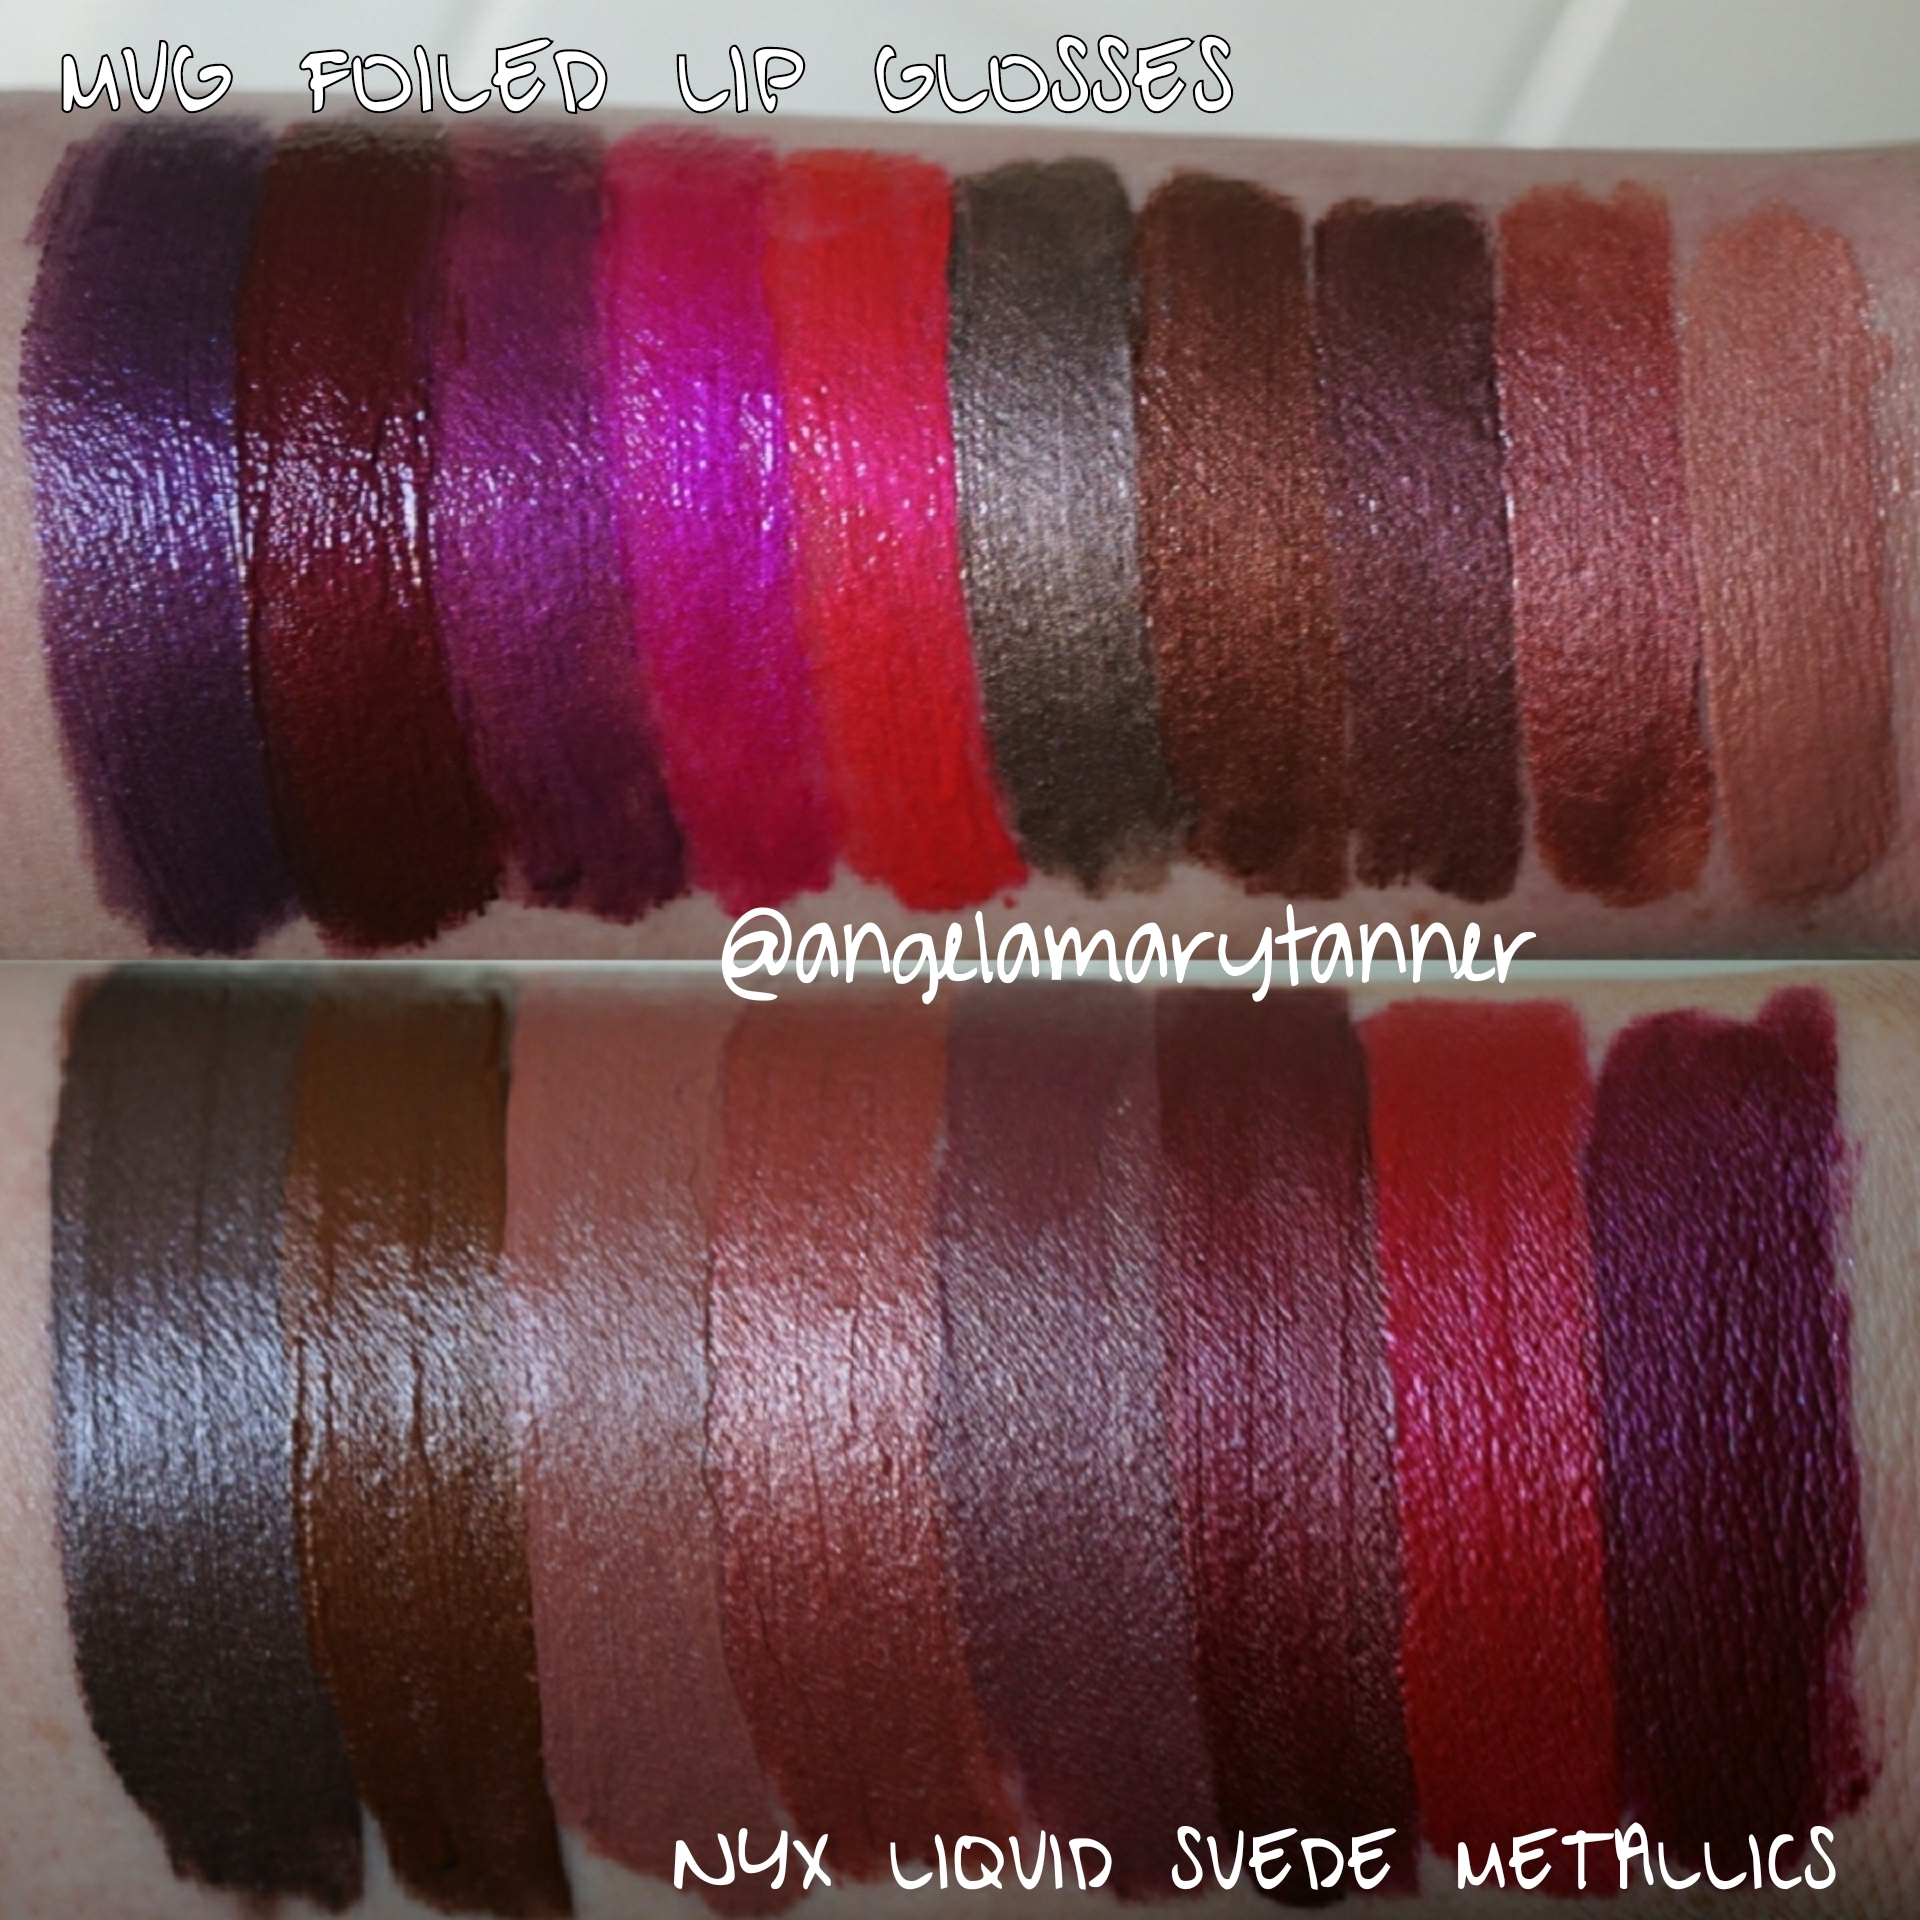 Nyx Professional Makeup Liquid Suede Metallics Review And Swatches